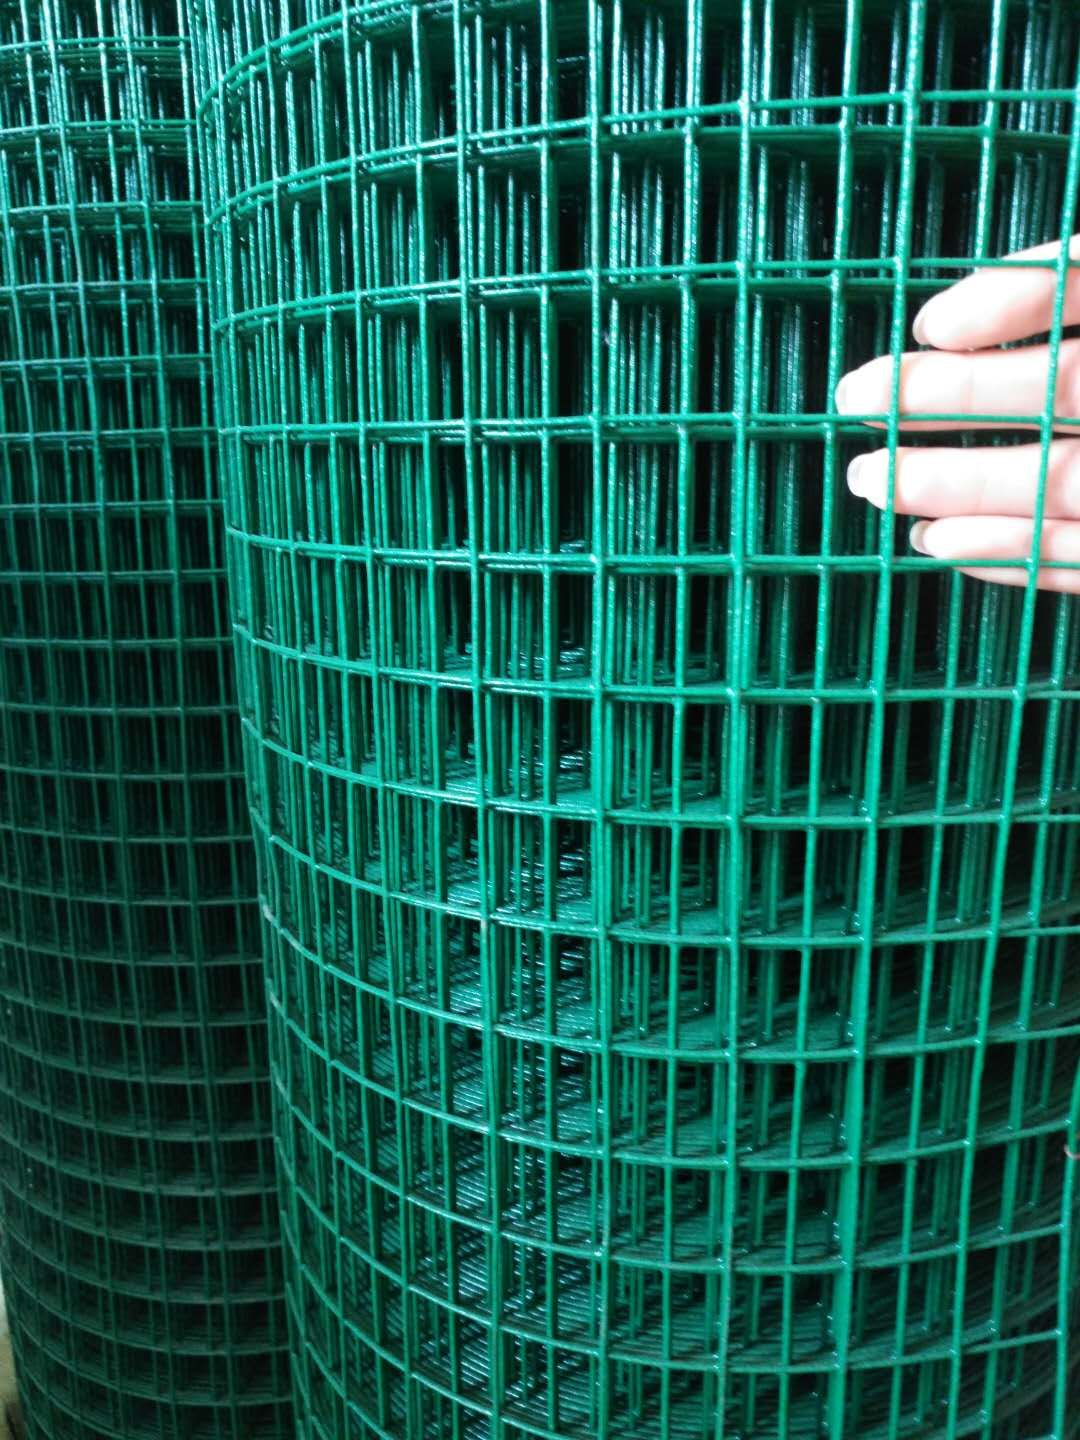 Pvc Coated Welded Wire Mesh With Mesh Size 1 X1 It Is Extensively Used In Industry And Agriculture Co Black Chain Link Fence Wire Mesh Fence Mesh Fencing